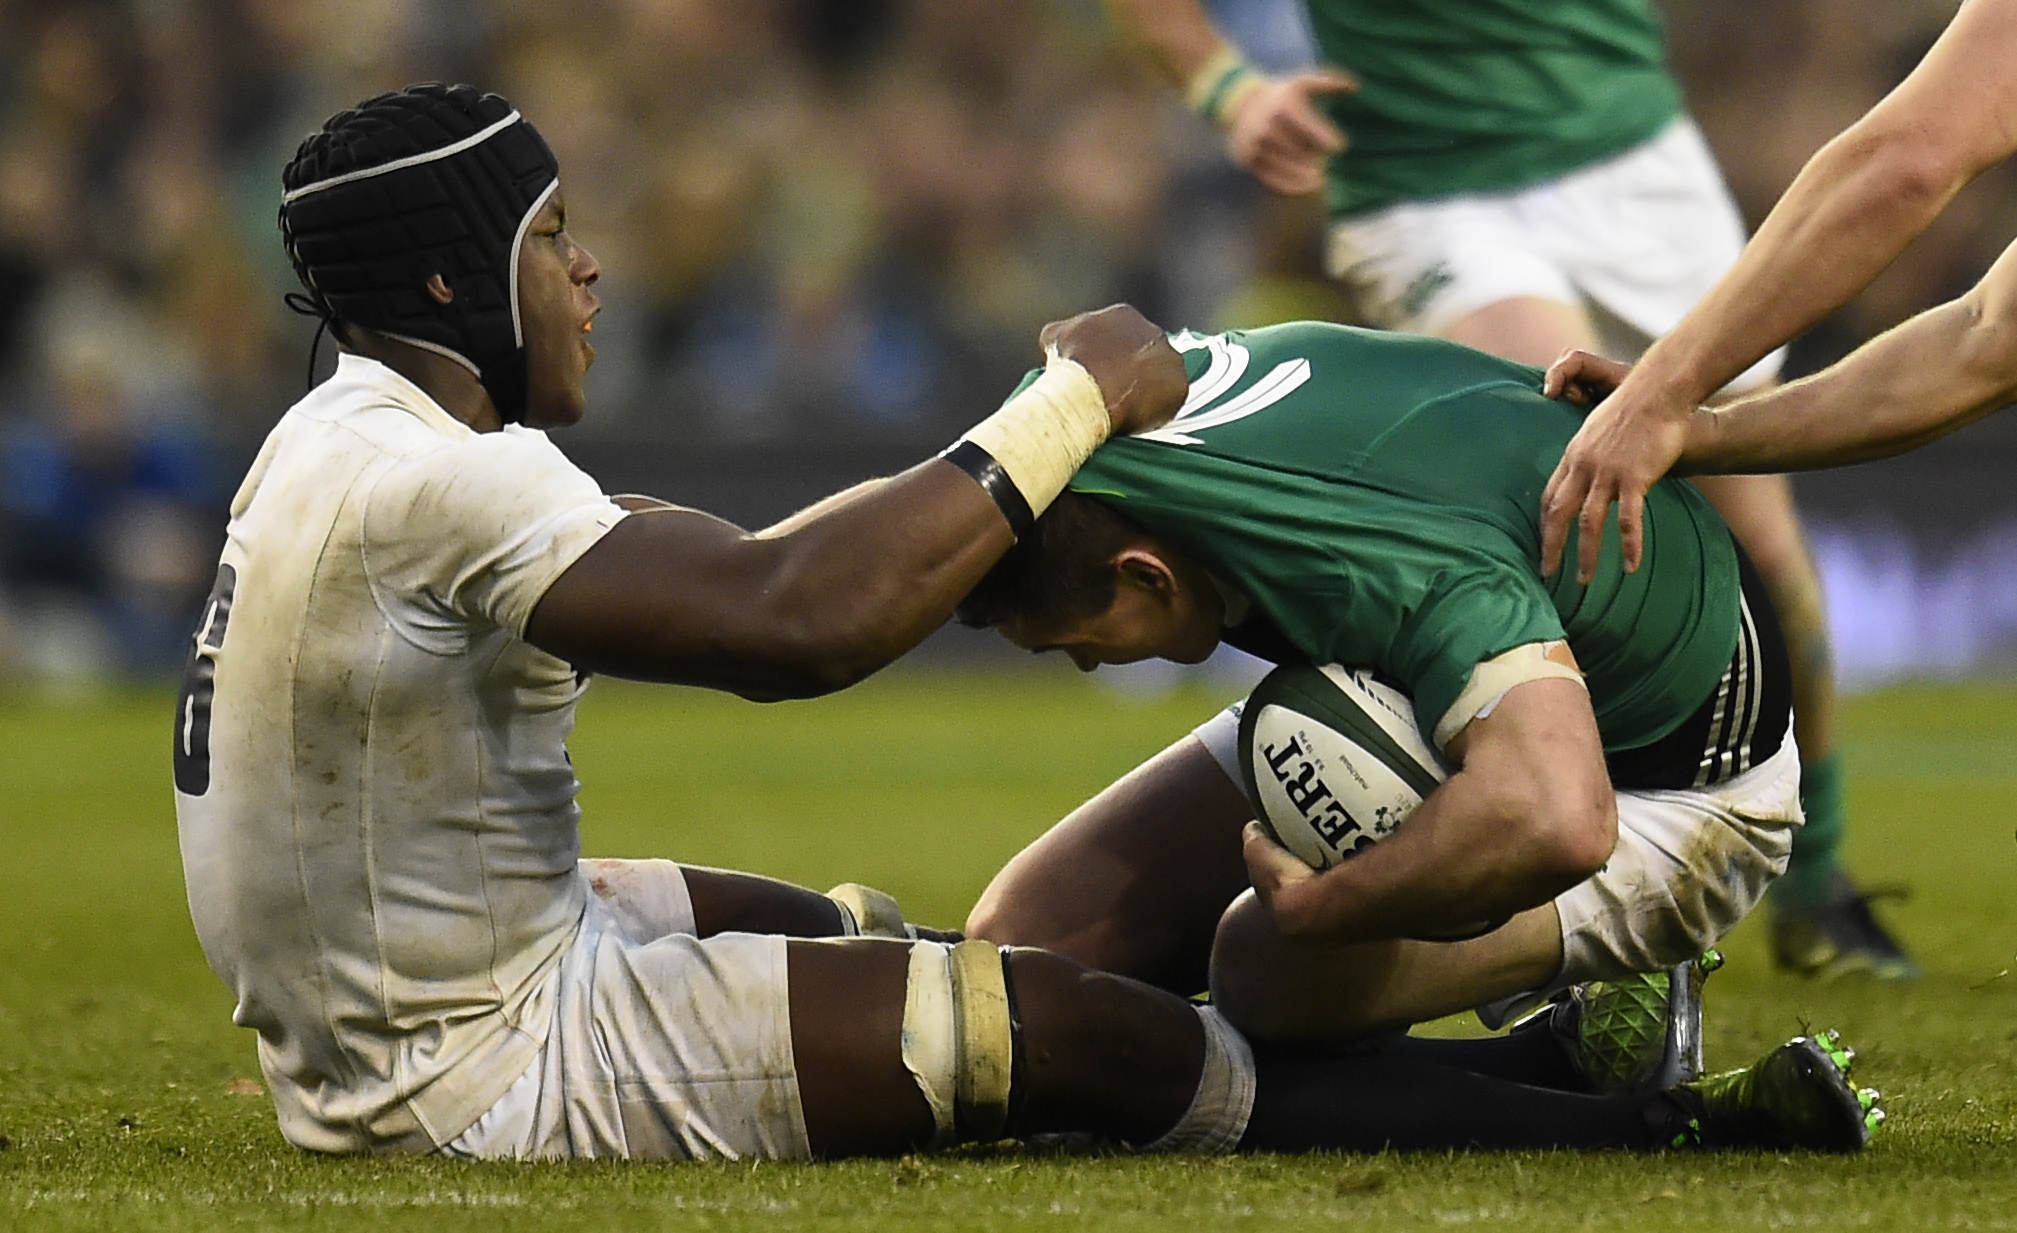 Rugby - 6 Nations - Angleterre-Irlande, le choc des chocs